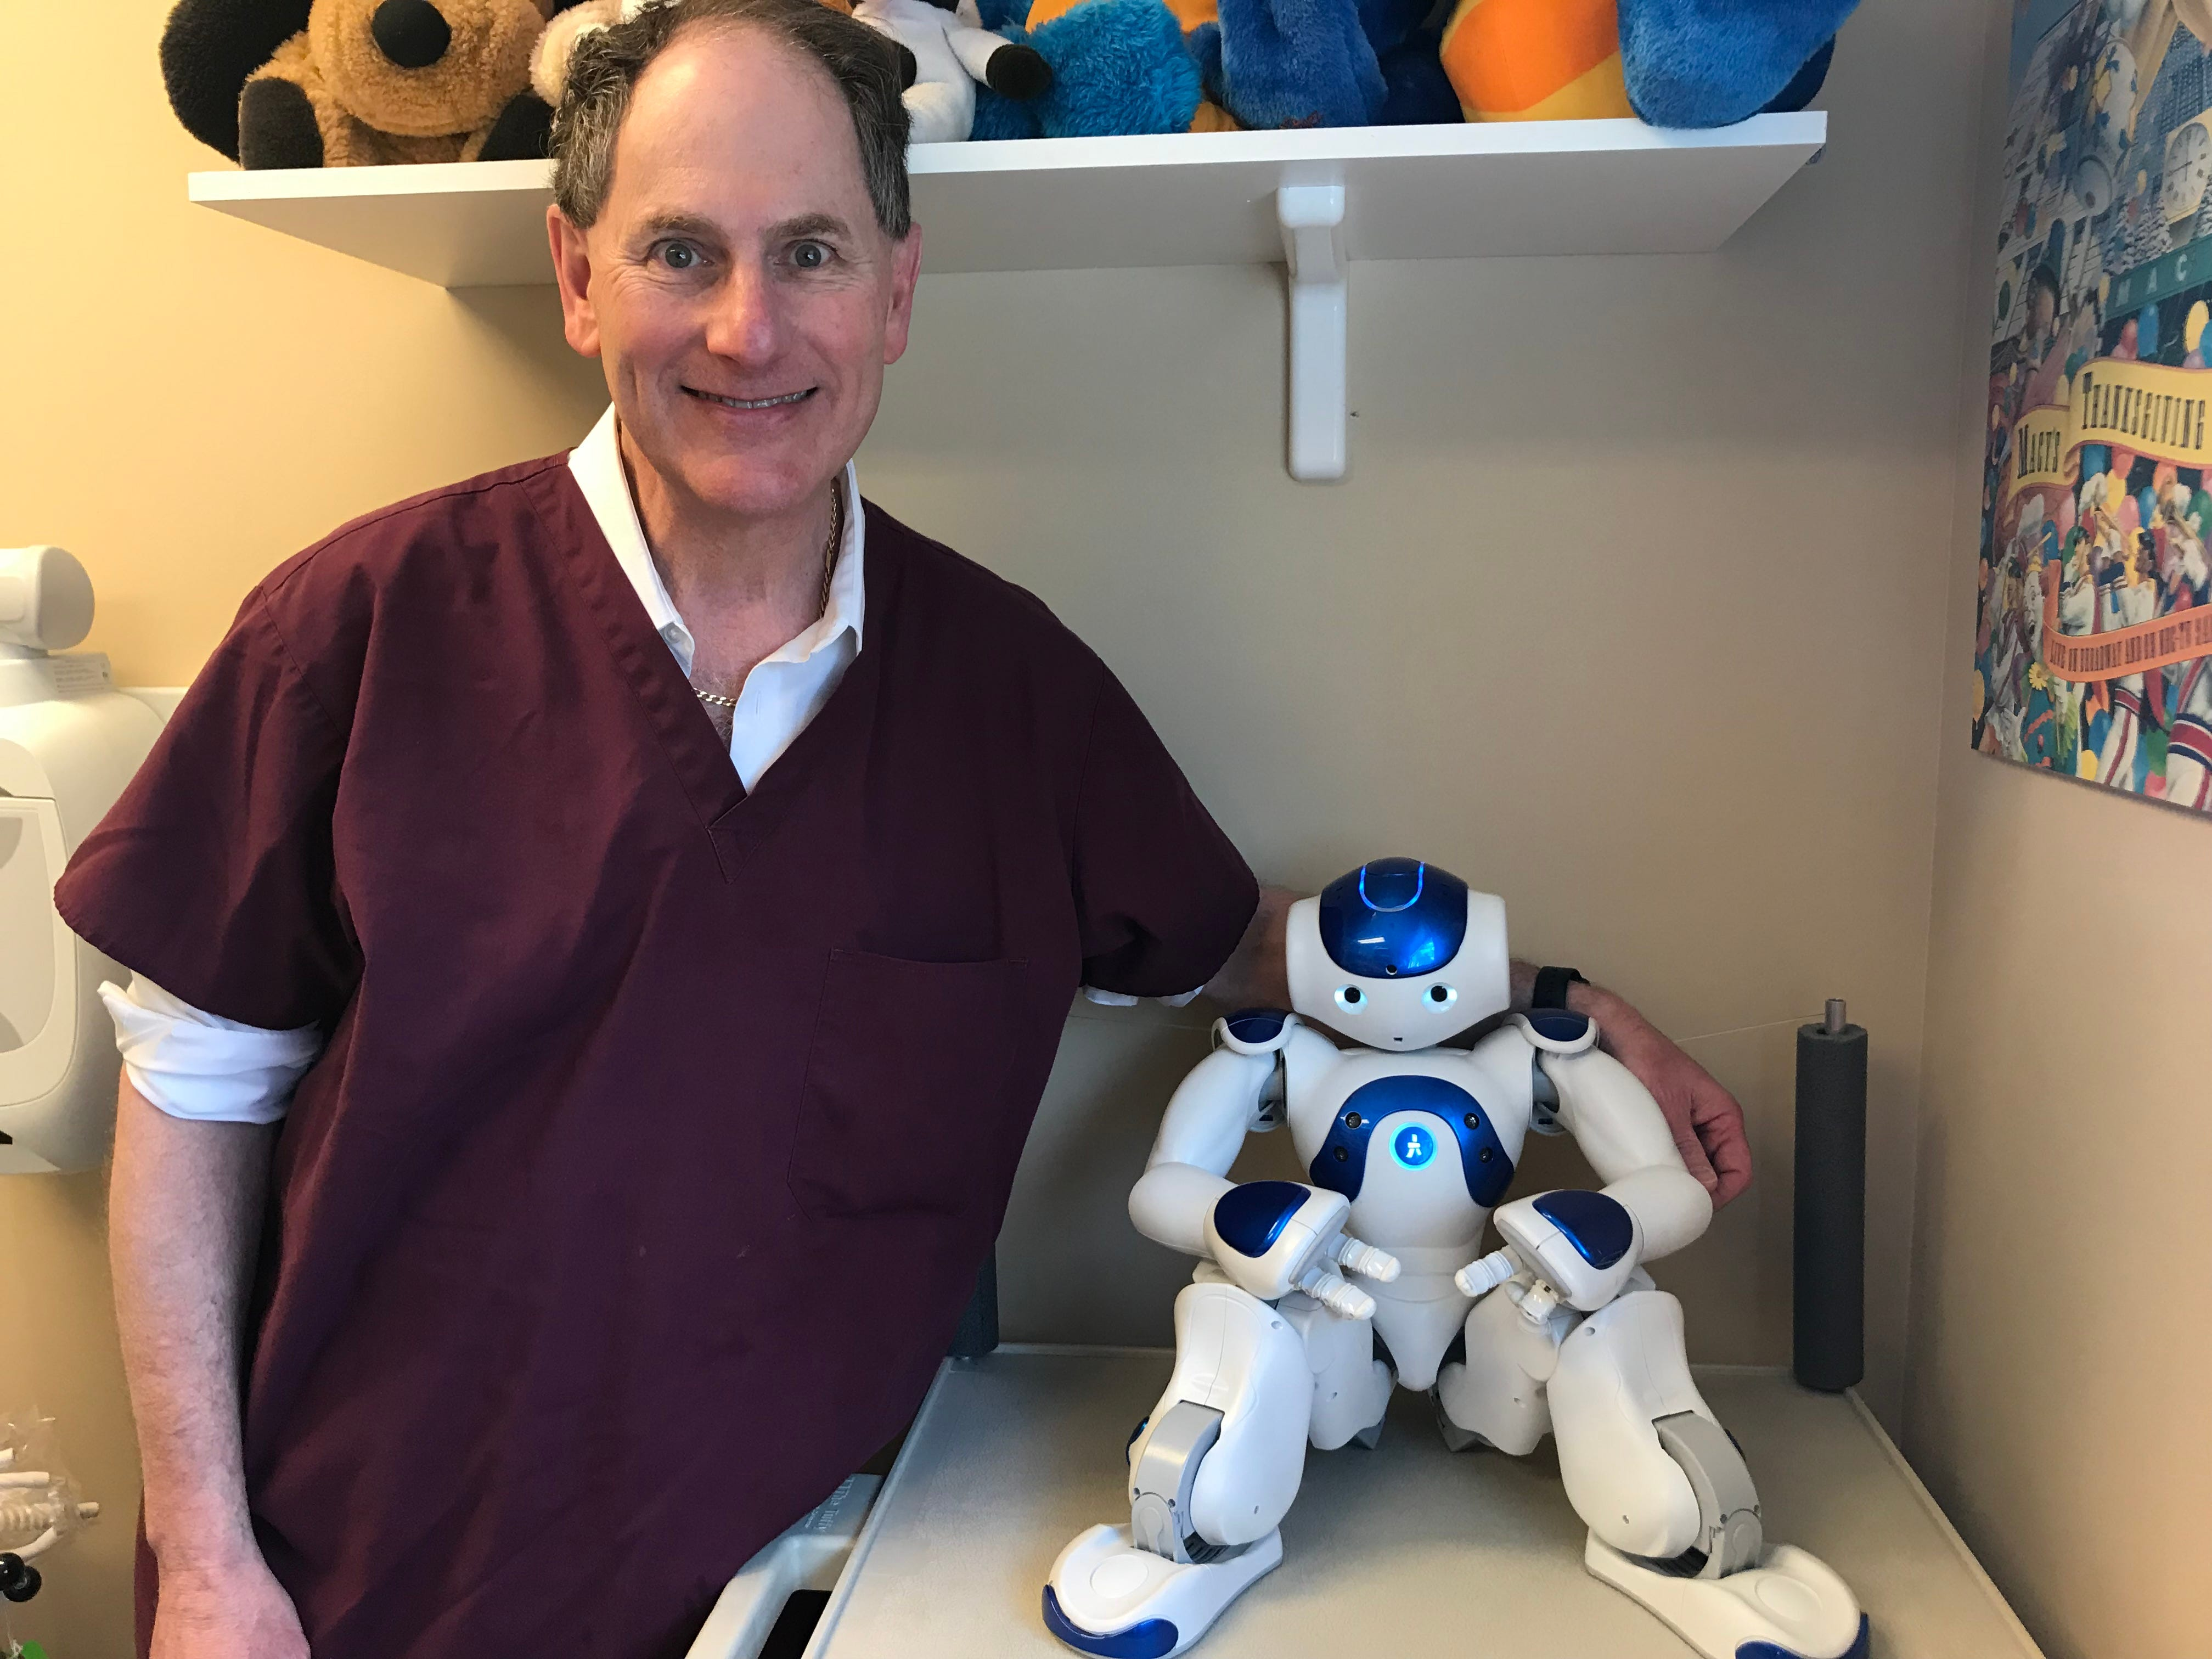 On staff for four years at Olin Dental Group, Medithe robot, here with Dr. Richard Olin, isprogrammed to act asa companion along side children in a dental operatory. Medi is able to speak to children at their level and decrease their concerns, anxietyand fears when they come to the dentist.